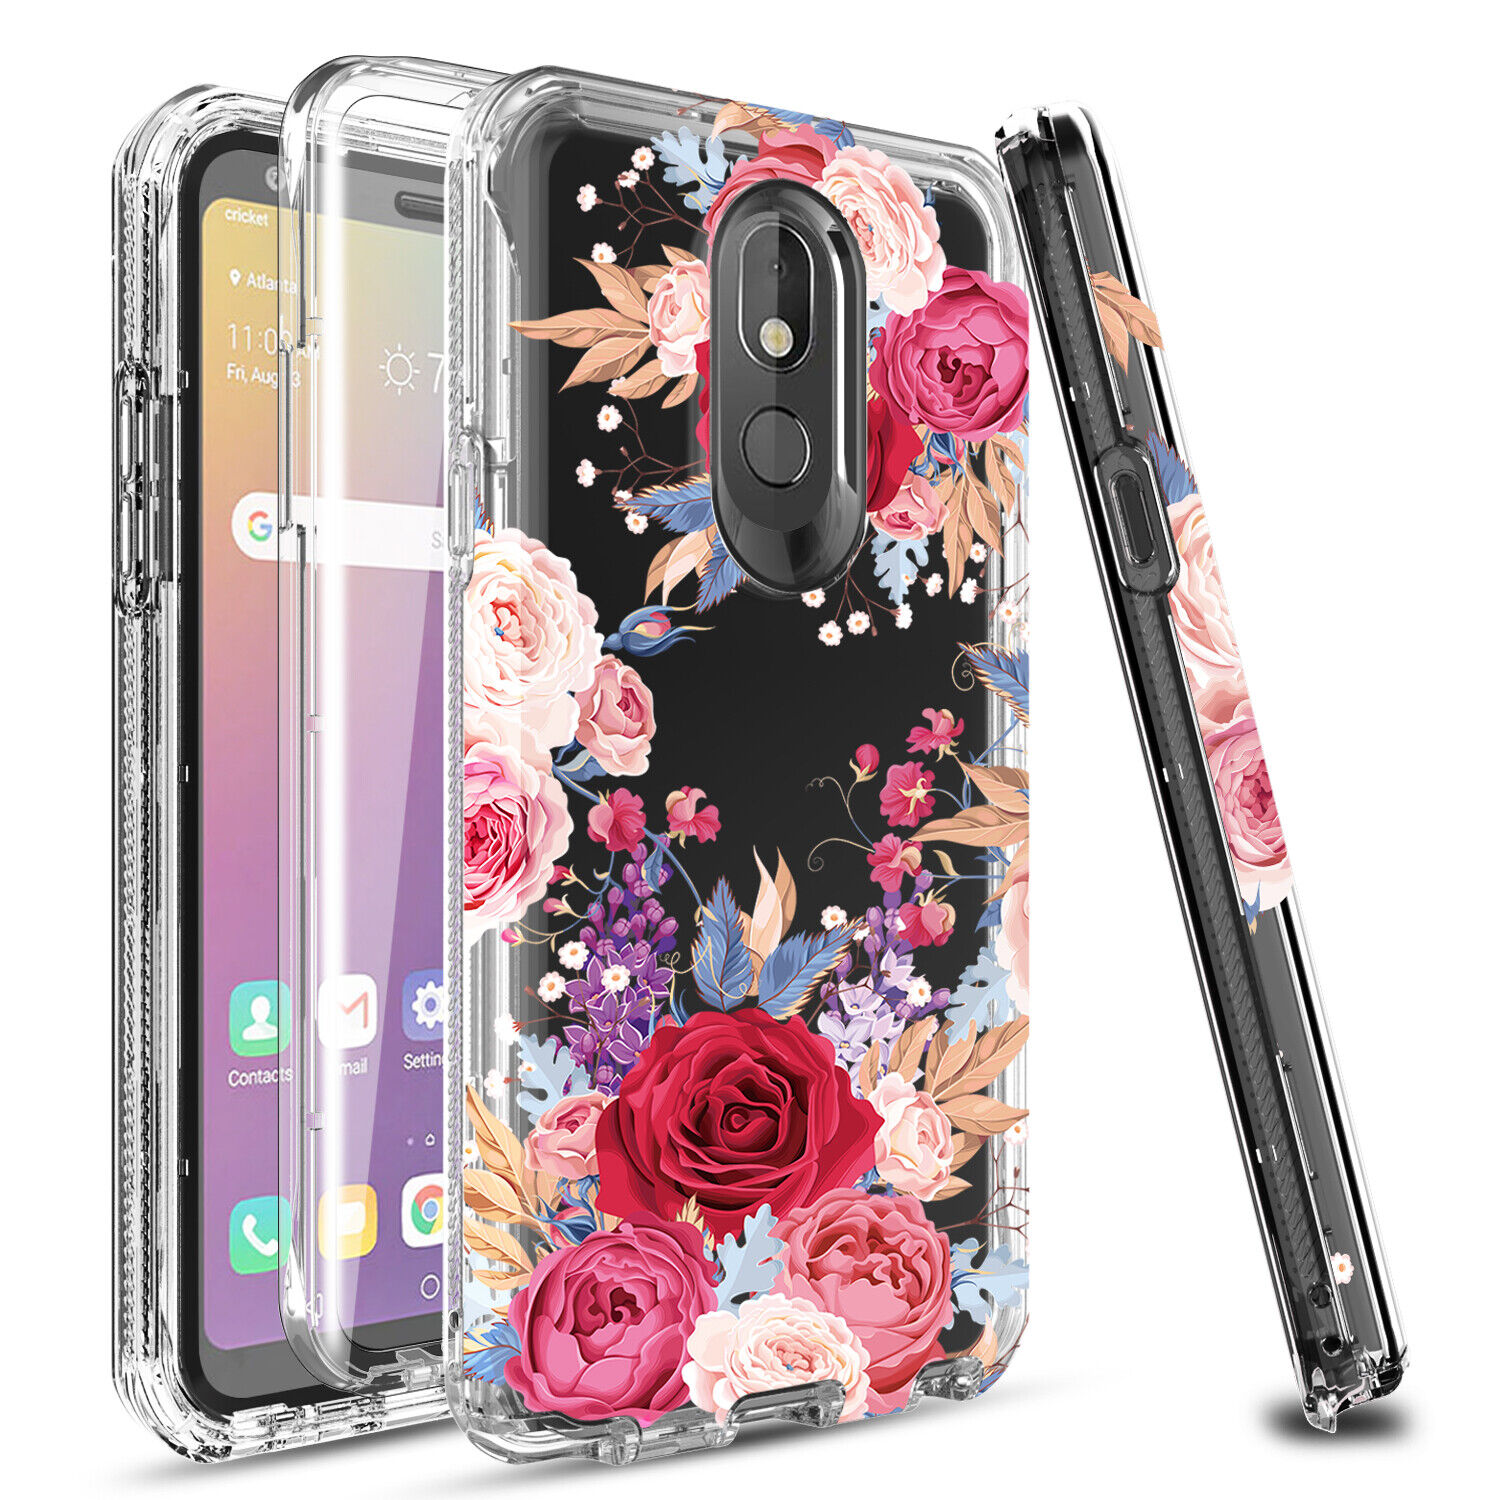 For LG Stylo 5/5x/5+ Shockproof Full Cover Case With Built-in Screen Protector Cases, Covers & Skins